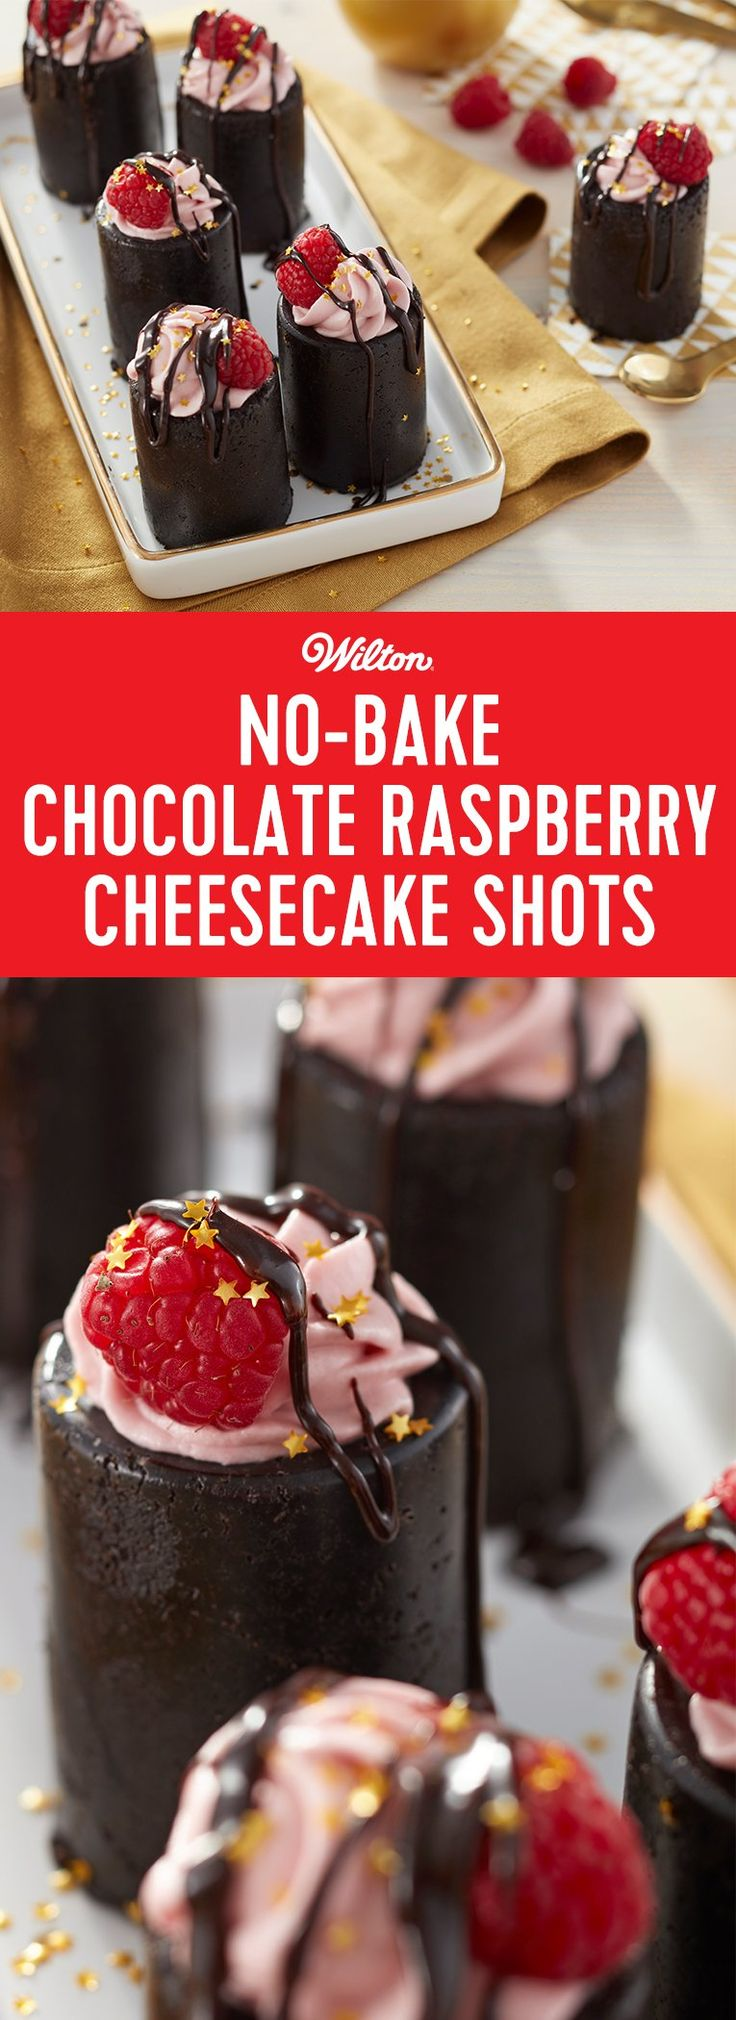 This No-Bake Chocolate Raspberry Cheesecake Shot recipe is just a little taste of something sweet! The shot glass is made using crushed cookies, then is filled with a raspberry-flavored cheesecake filling. Top your dessert shots with a little raspberry and a drizzle of chocolate syrup for a tasty end to your meal. #christmas #newyear #cheesecake #shotglass #wiltoncakes